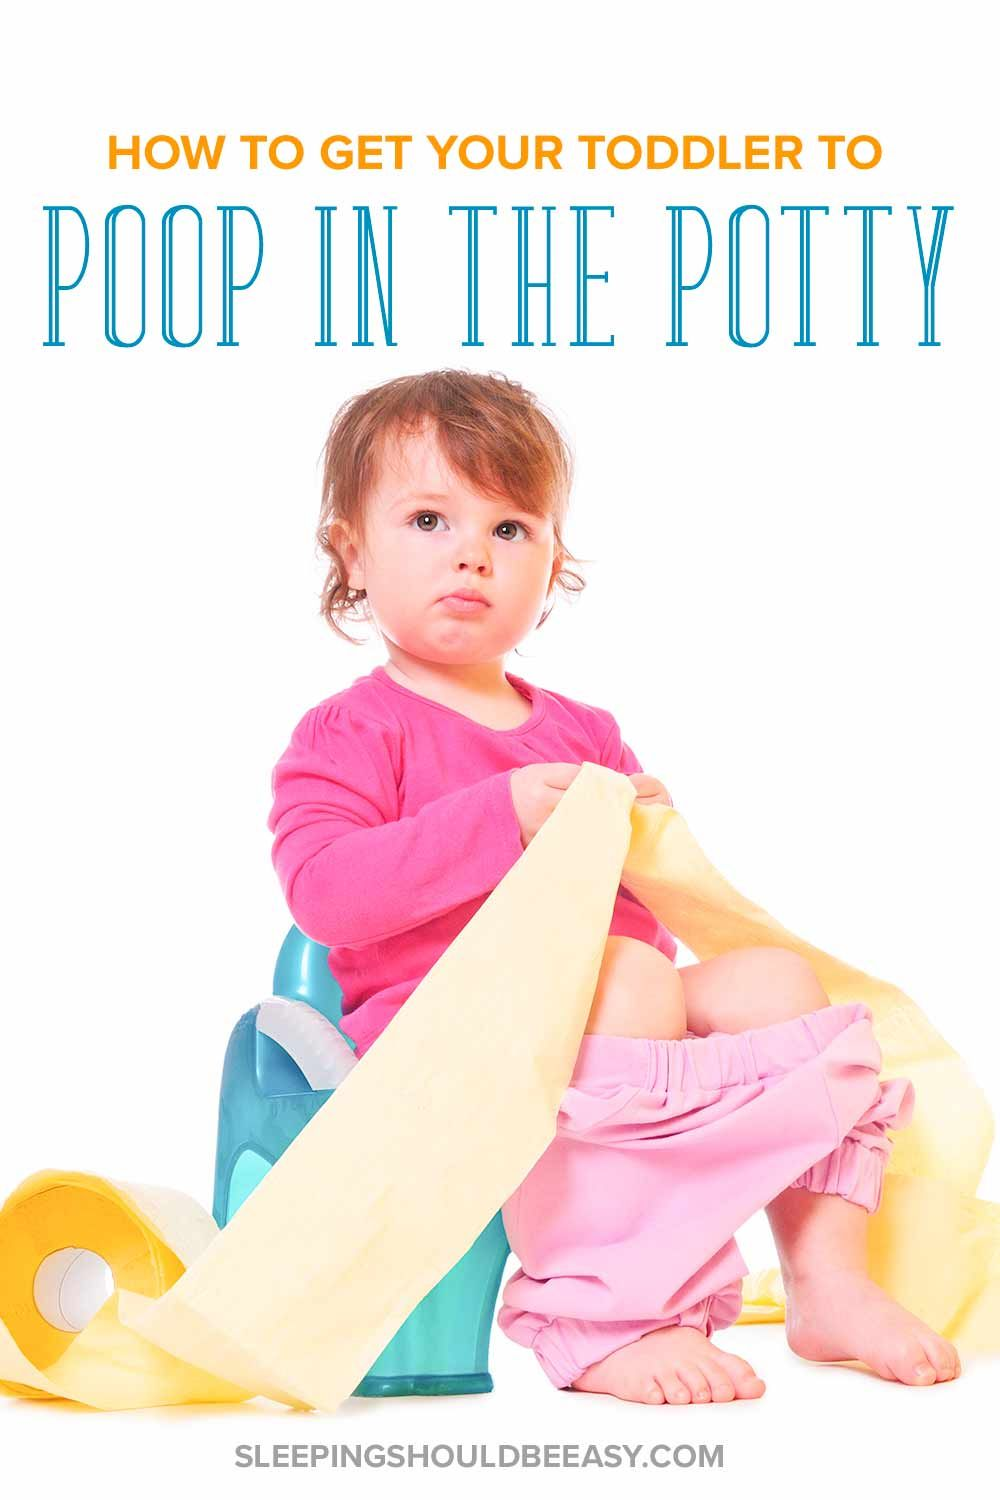 Regular Potty Times and Other Things That Will Help Your